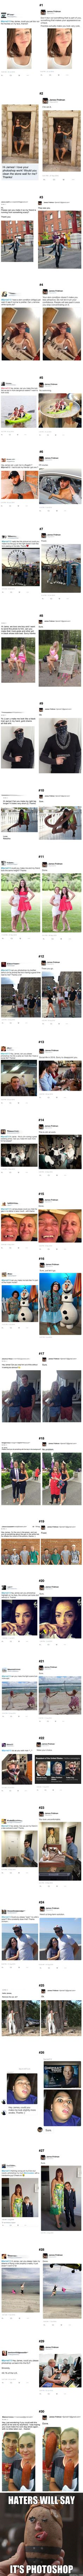 Geek Discover 30 Photoshop Requests That Are Taken Literally By James Fridman More memes funny videos and pics on James Fridman E Have A Laugh Just For Laughs Funny Posts Laugh Out Loud The Funny I Laughed Funny Pictures Funny Quotes, Funny Memes, Hilarious, Jokes, Funny Fails, Funny Yearbook Quotes, Funny Videos, Really Funny, The Funny